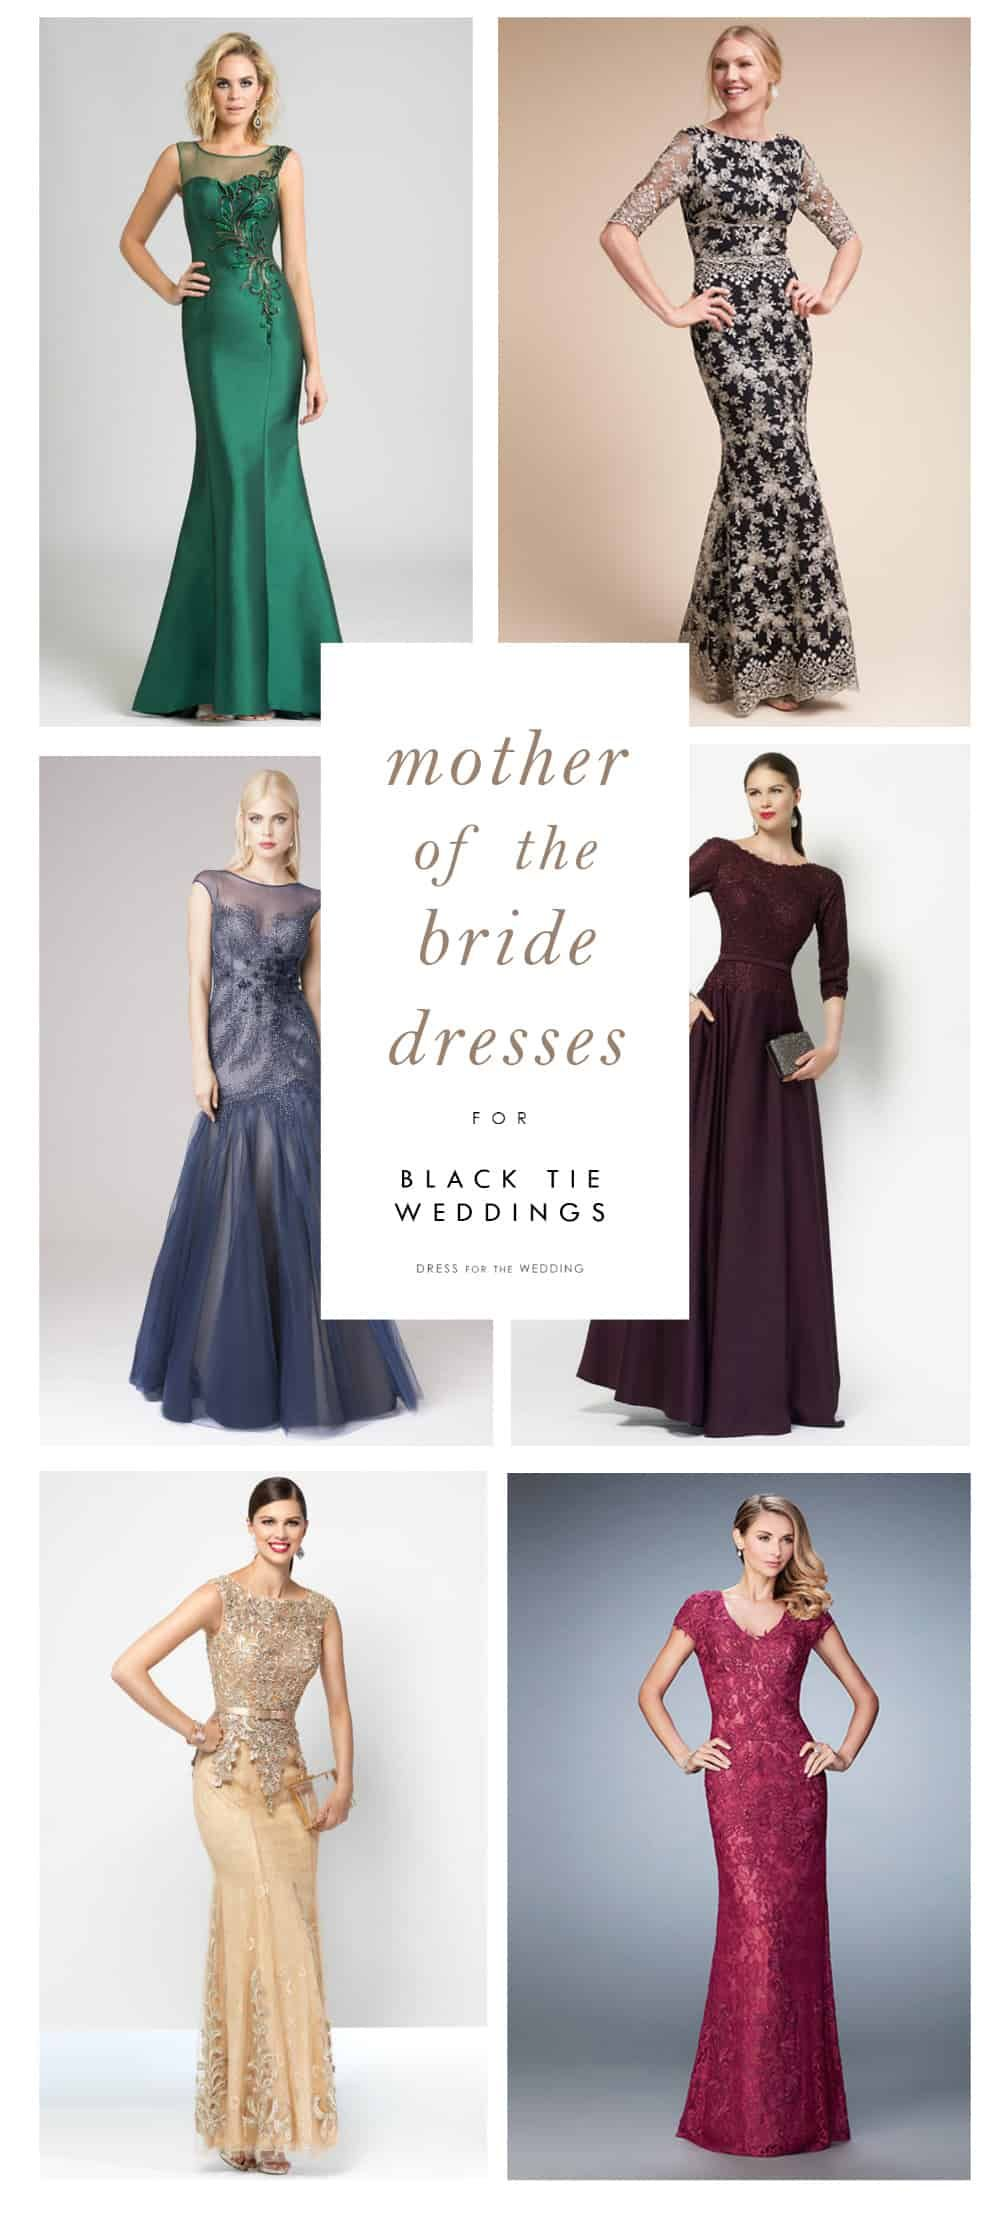 Mother Of The Bride Dresses For Black Tie Weddings Dress For The Wedding Black Tie Dress Wedding Mother Of The Bride Dresses Bride Dress